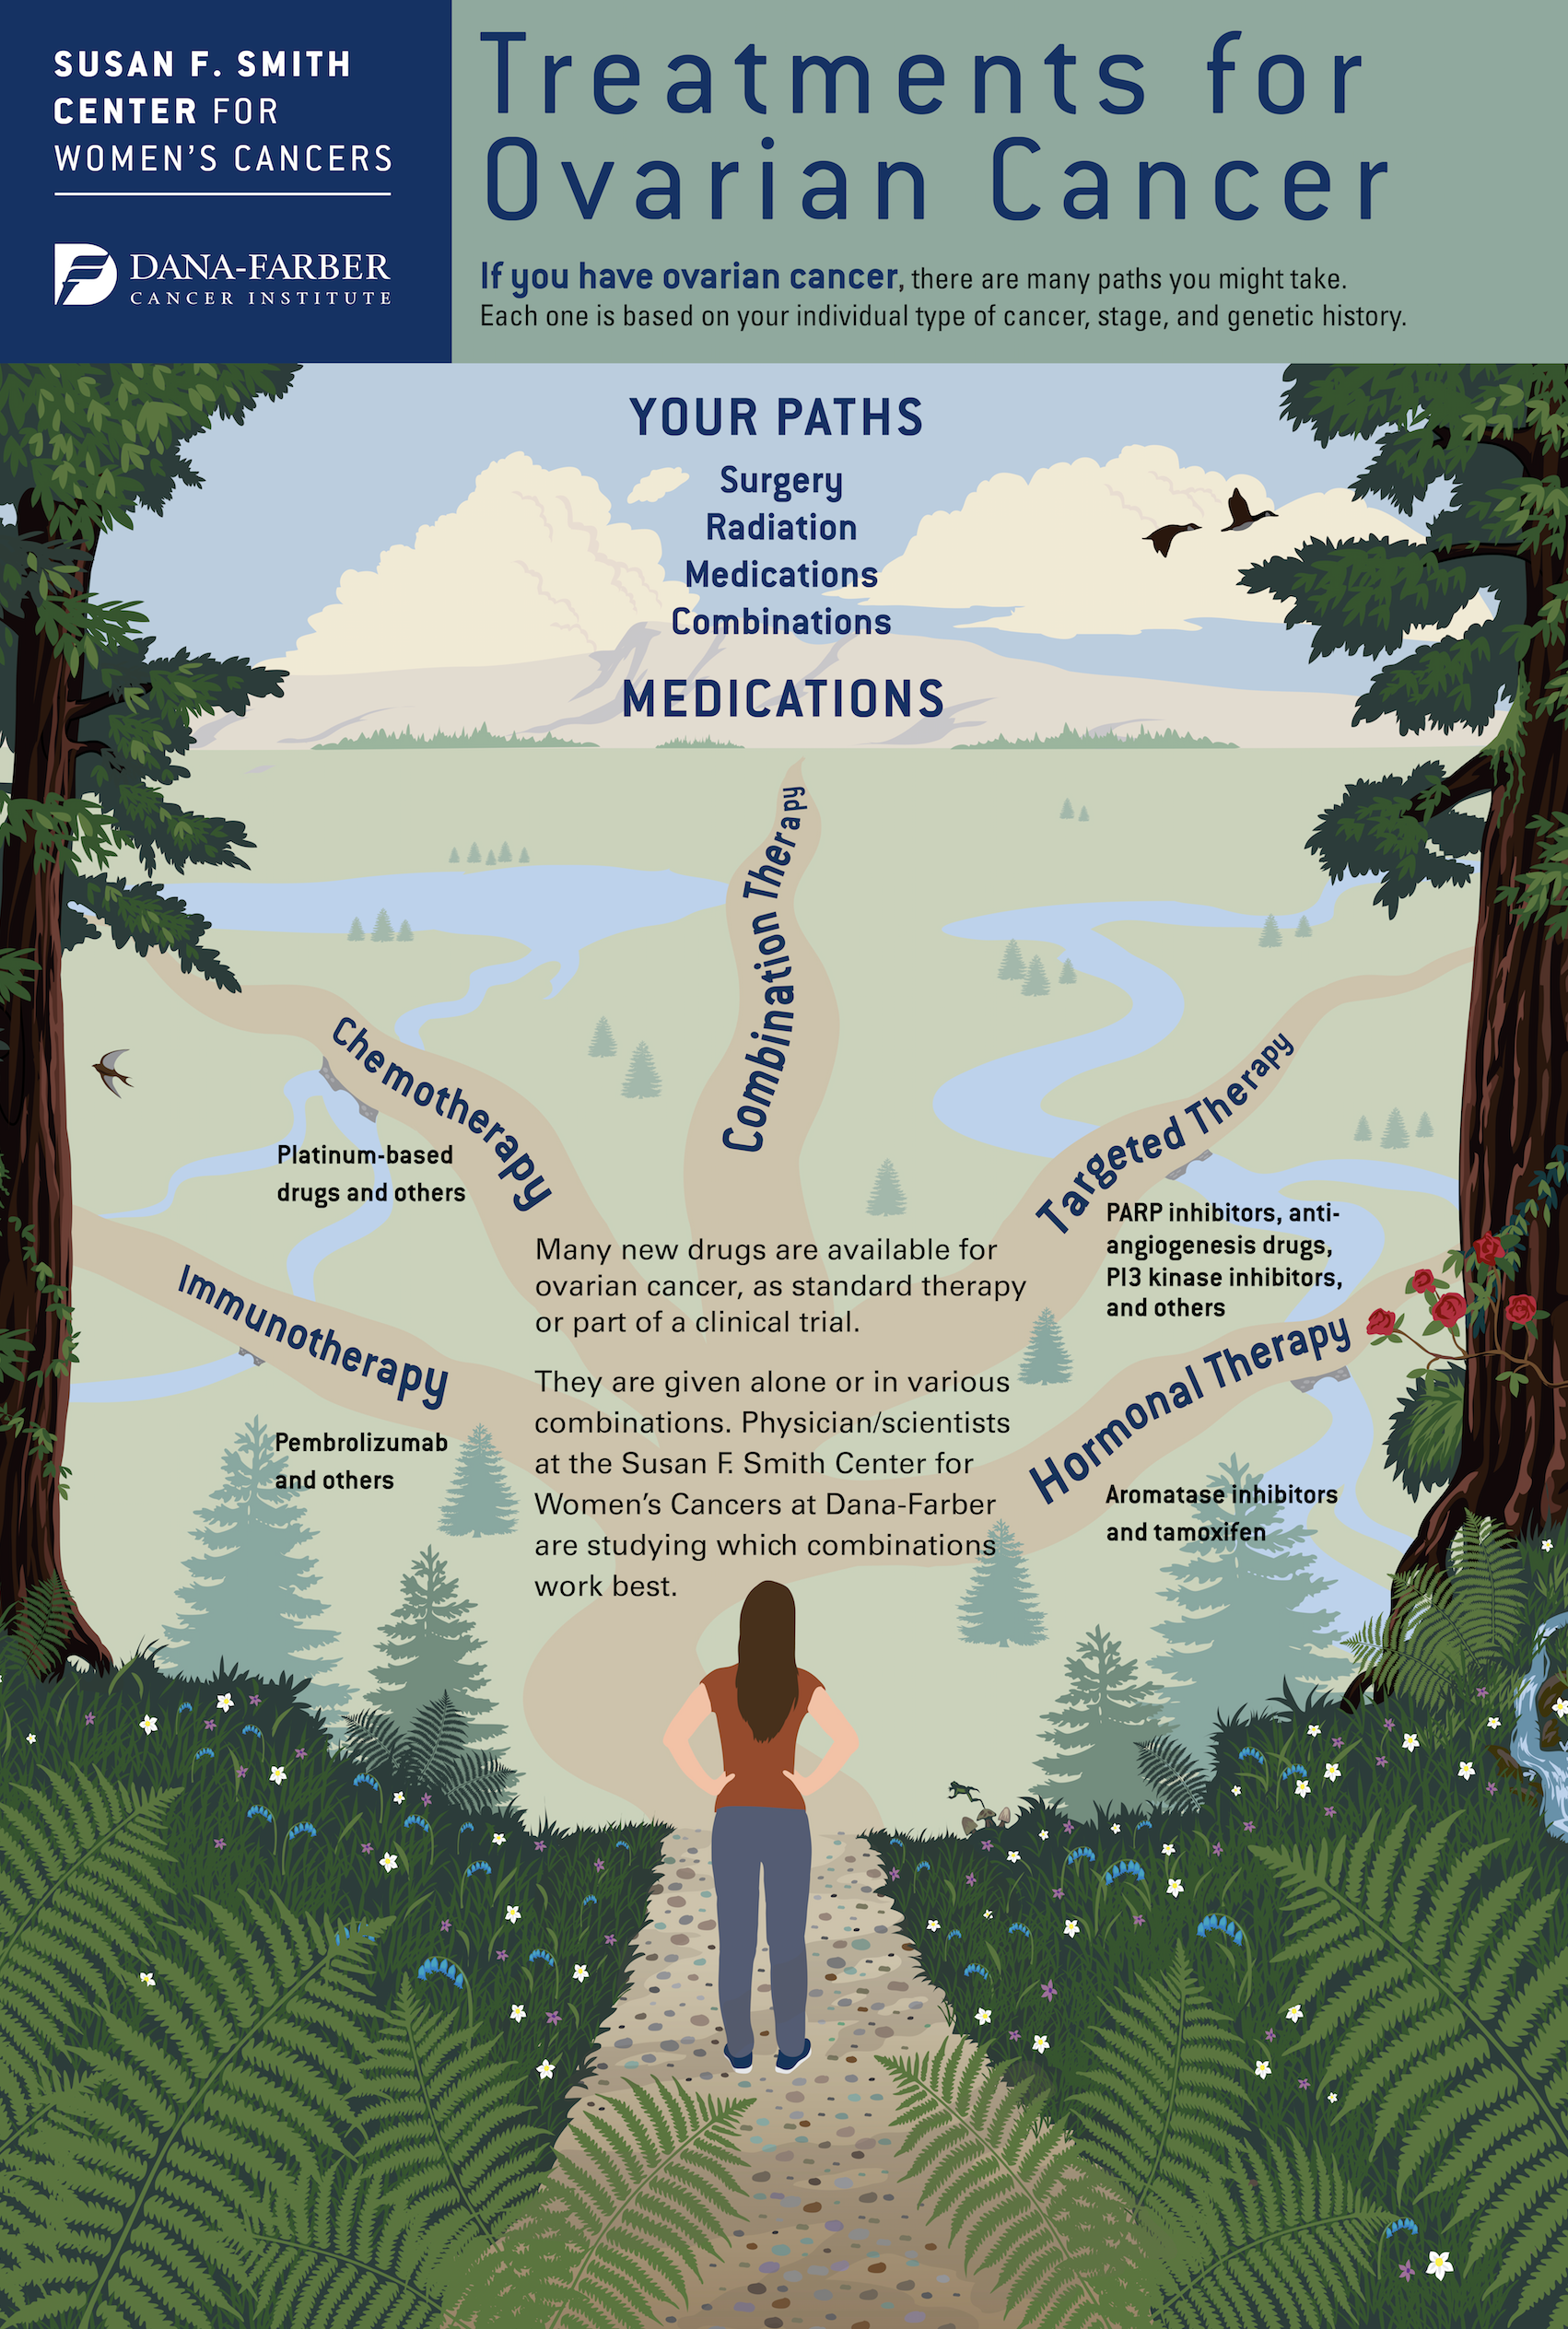 Treatments for Ovarian Cancer Infographic